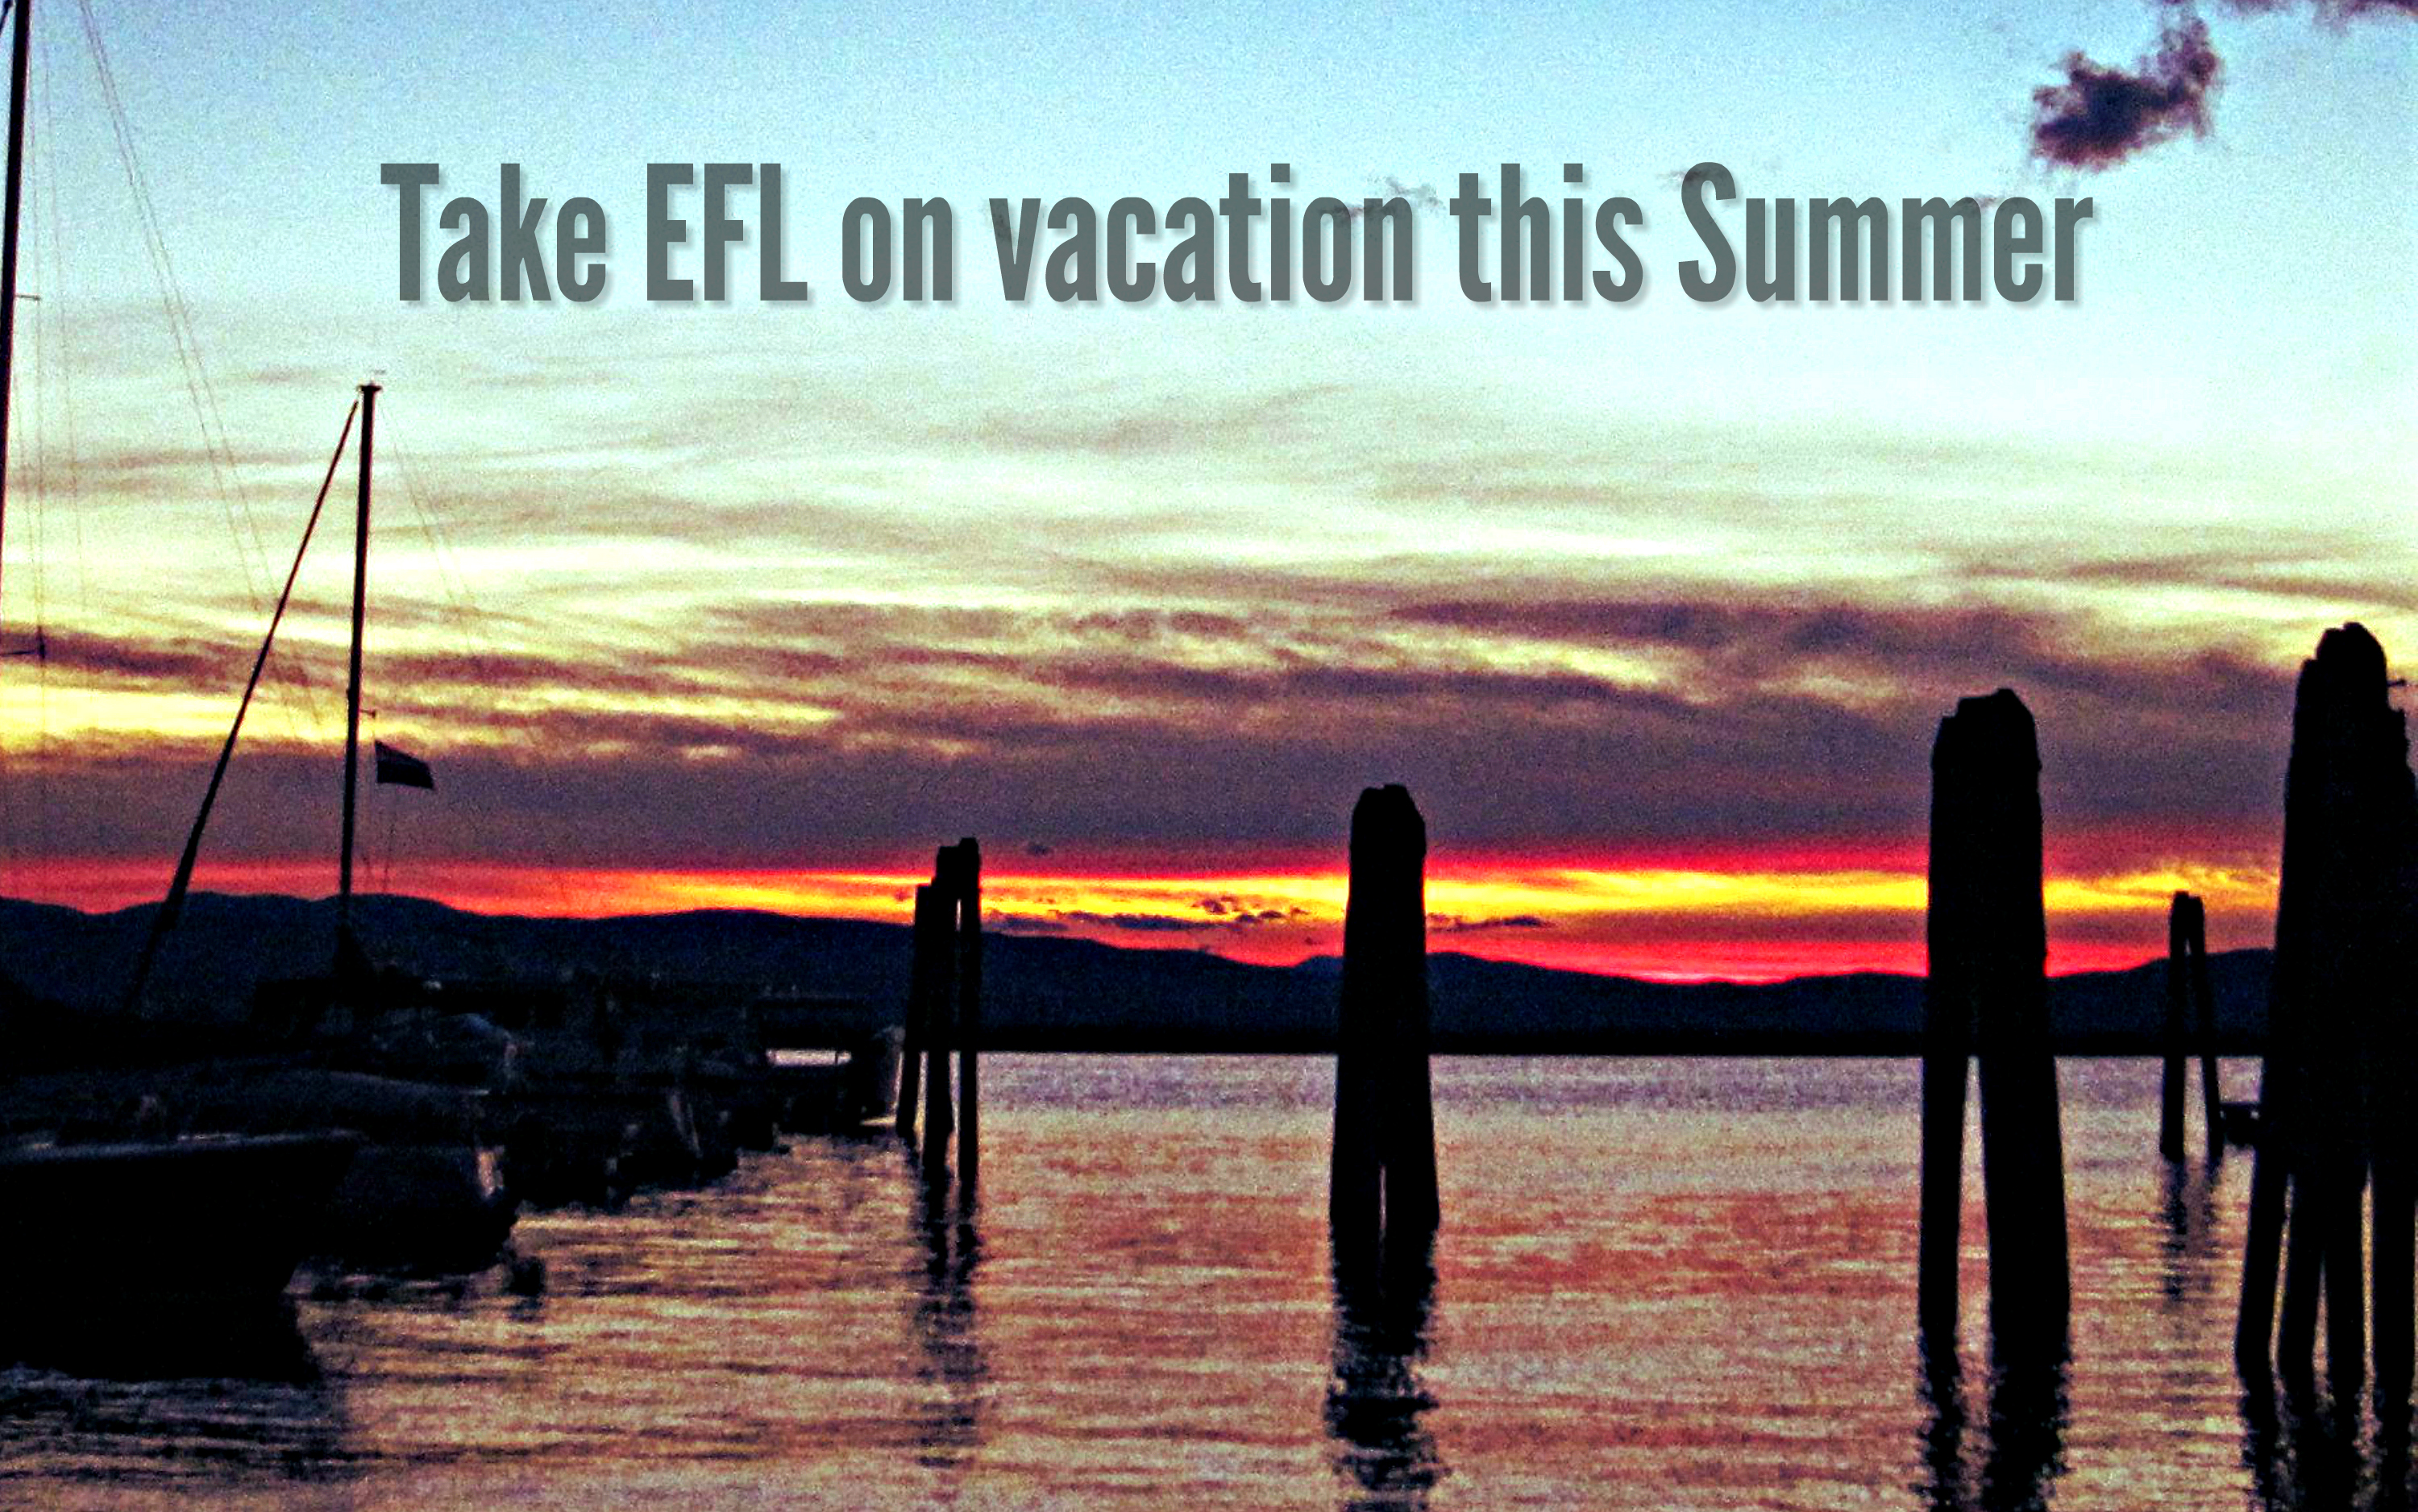 EastFallslocal lake champlain sunset scene TEXT